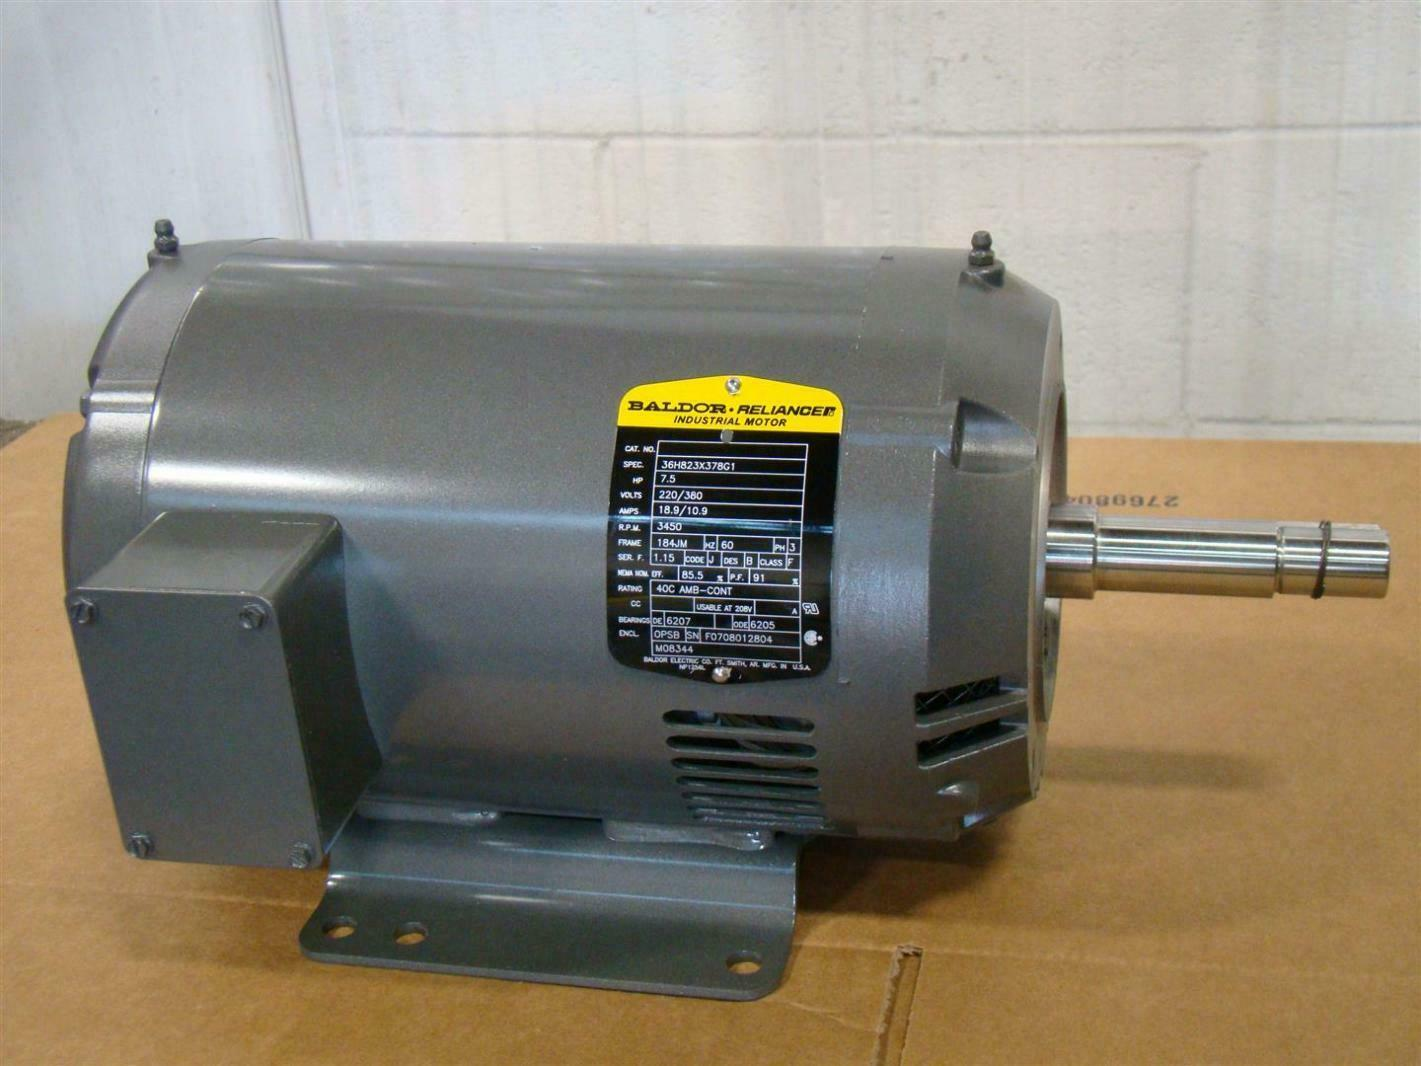 baldor reliancer industrial motor 7 5hp 220 380v 3450rpm